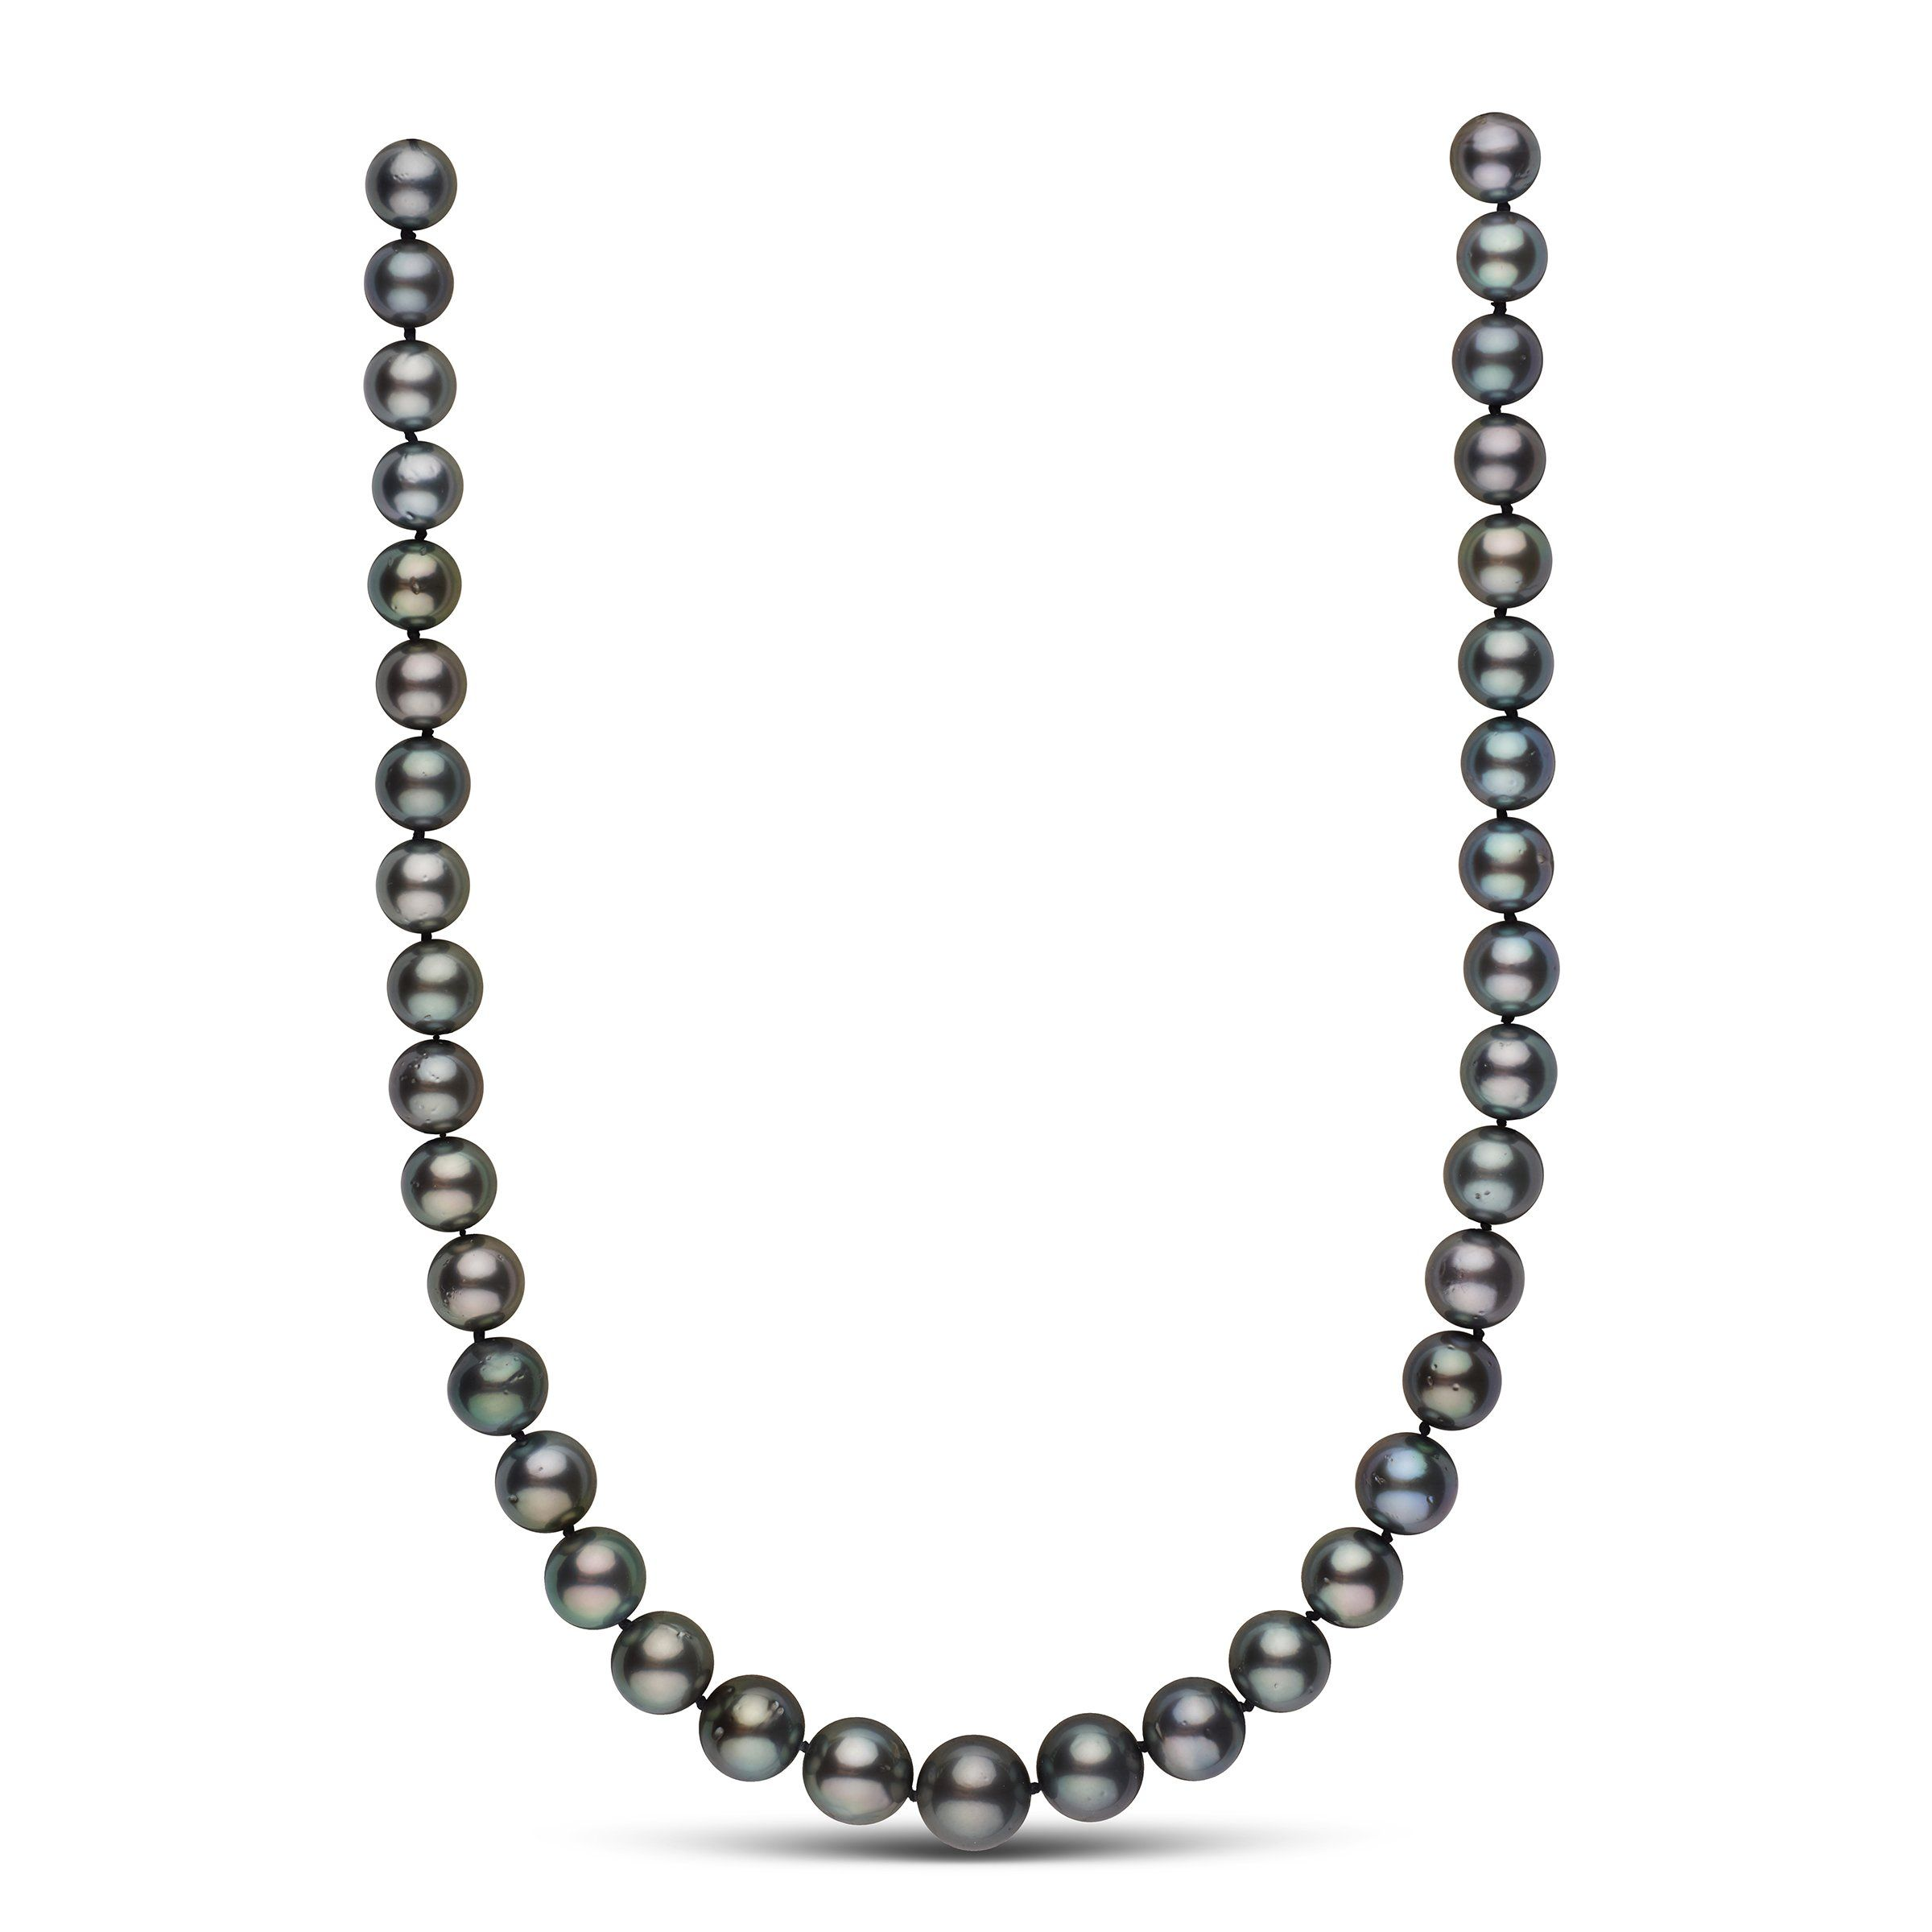 9.9-13.0 mm AA+ Tahitian Round Pearl Necklace